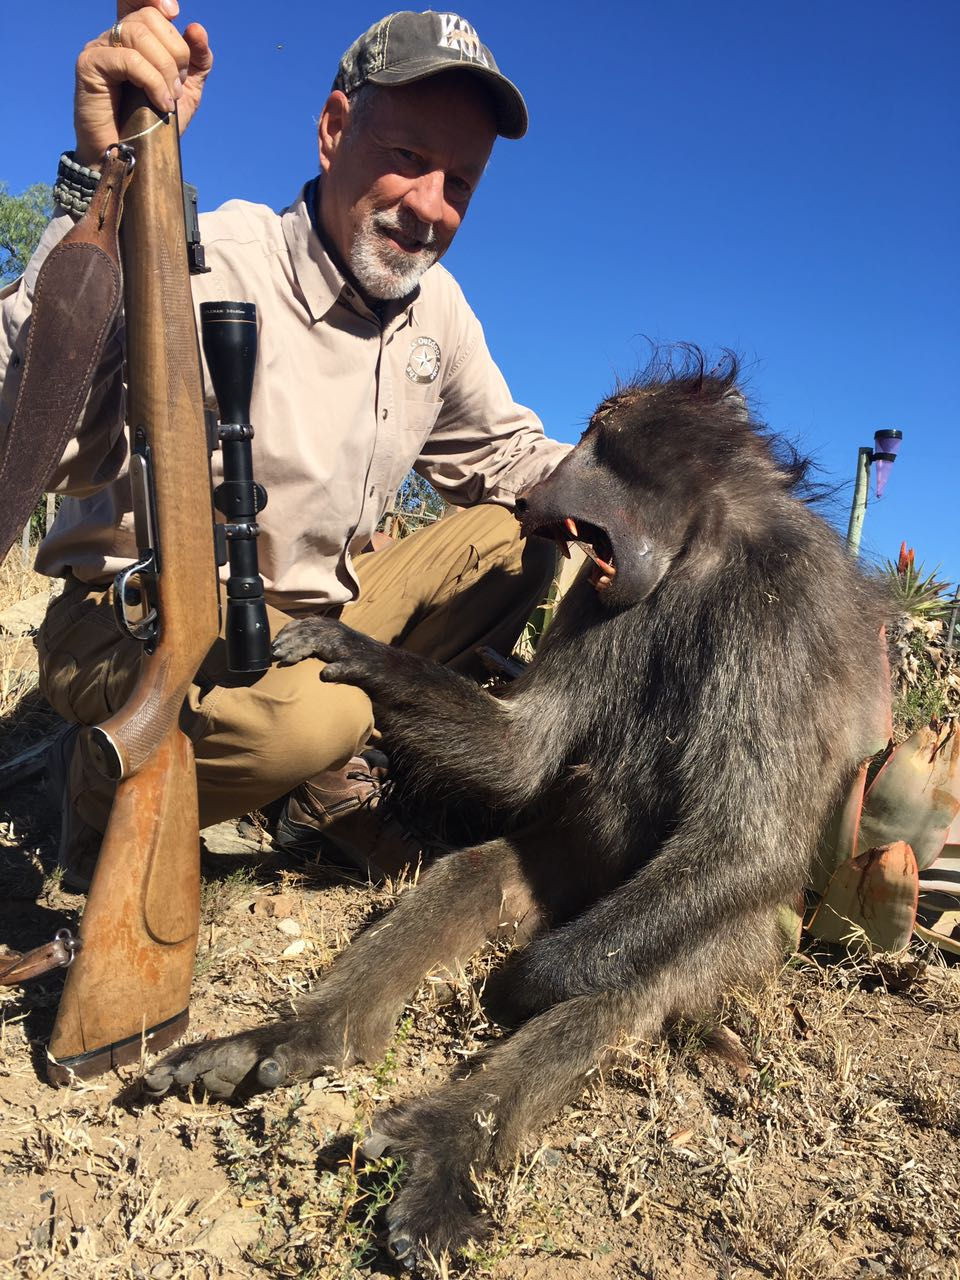 TJ Greaney Baboon 2017